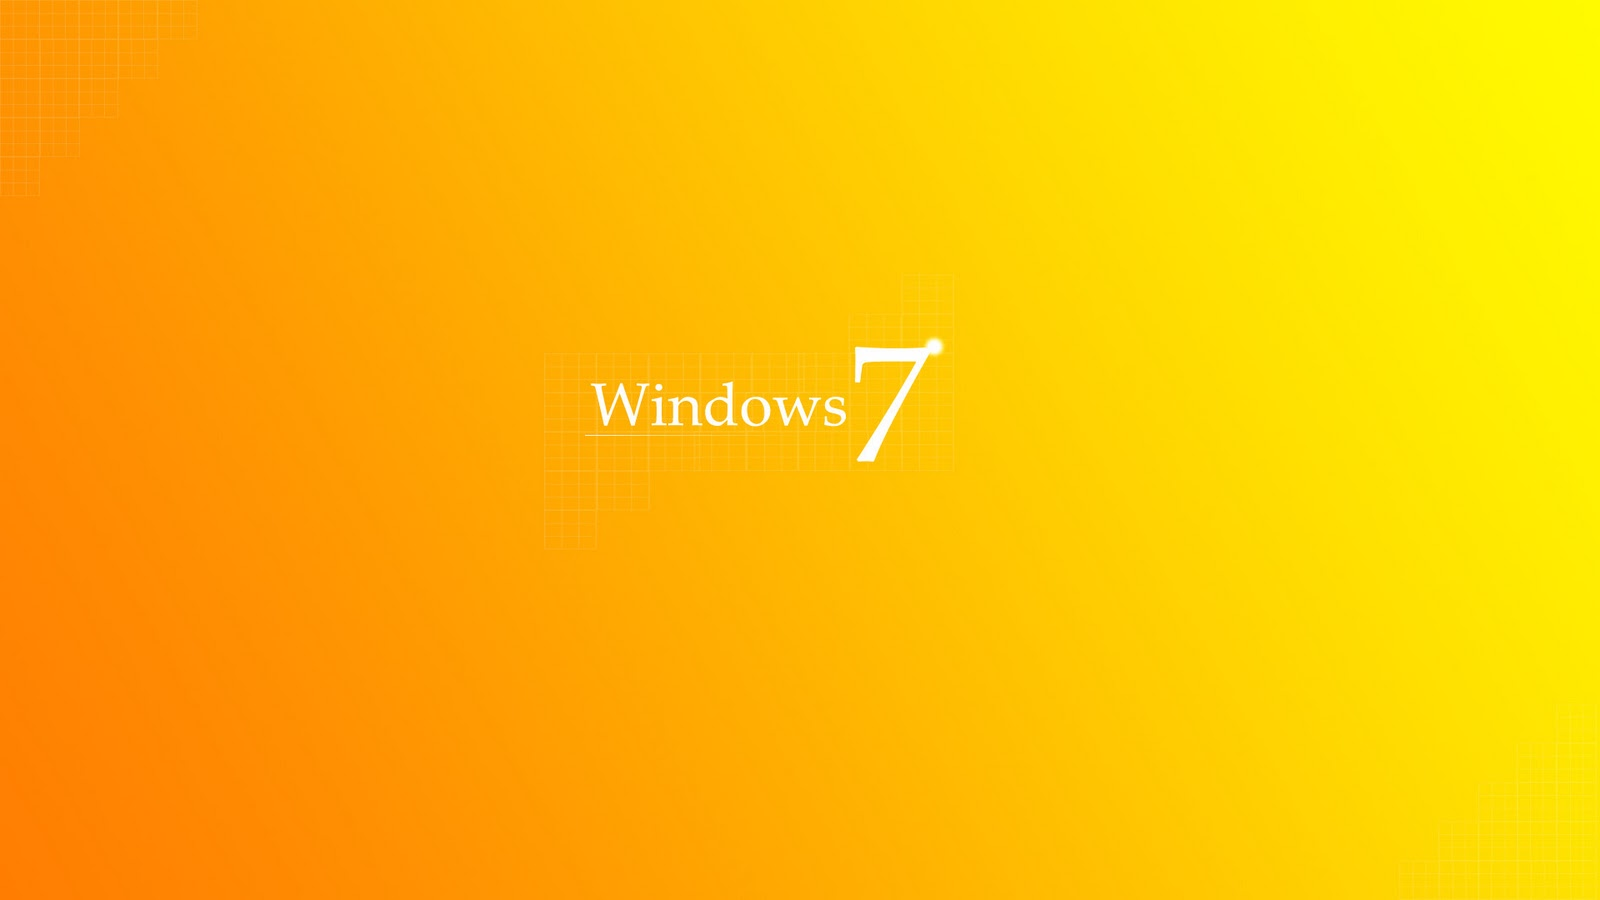 windows 7 wallpaper and background